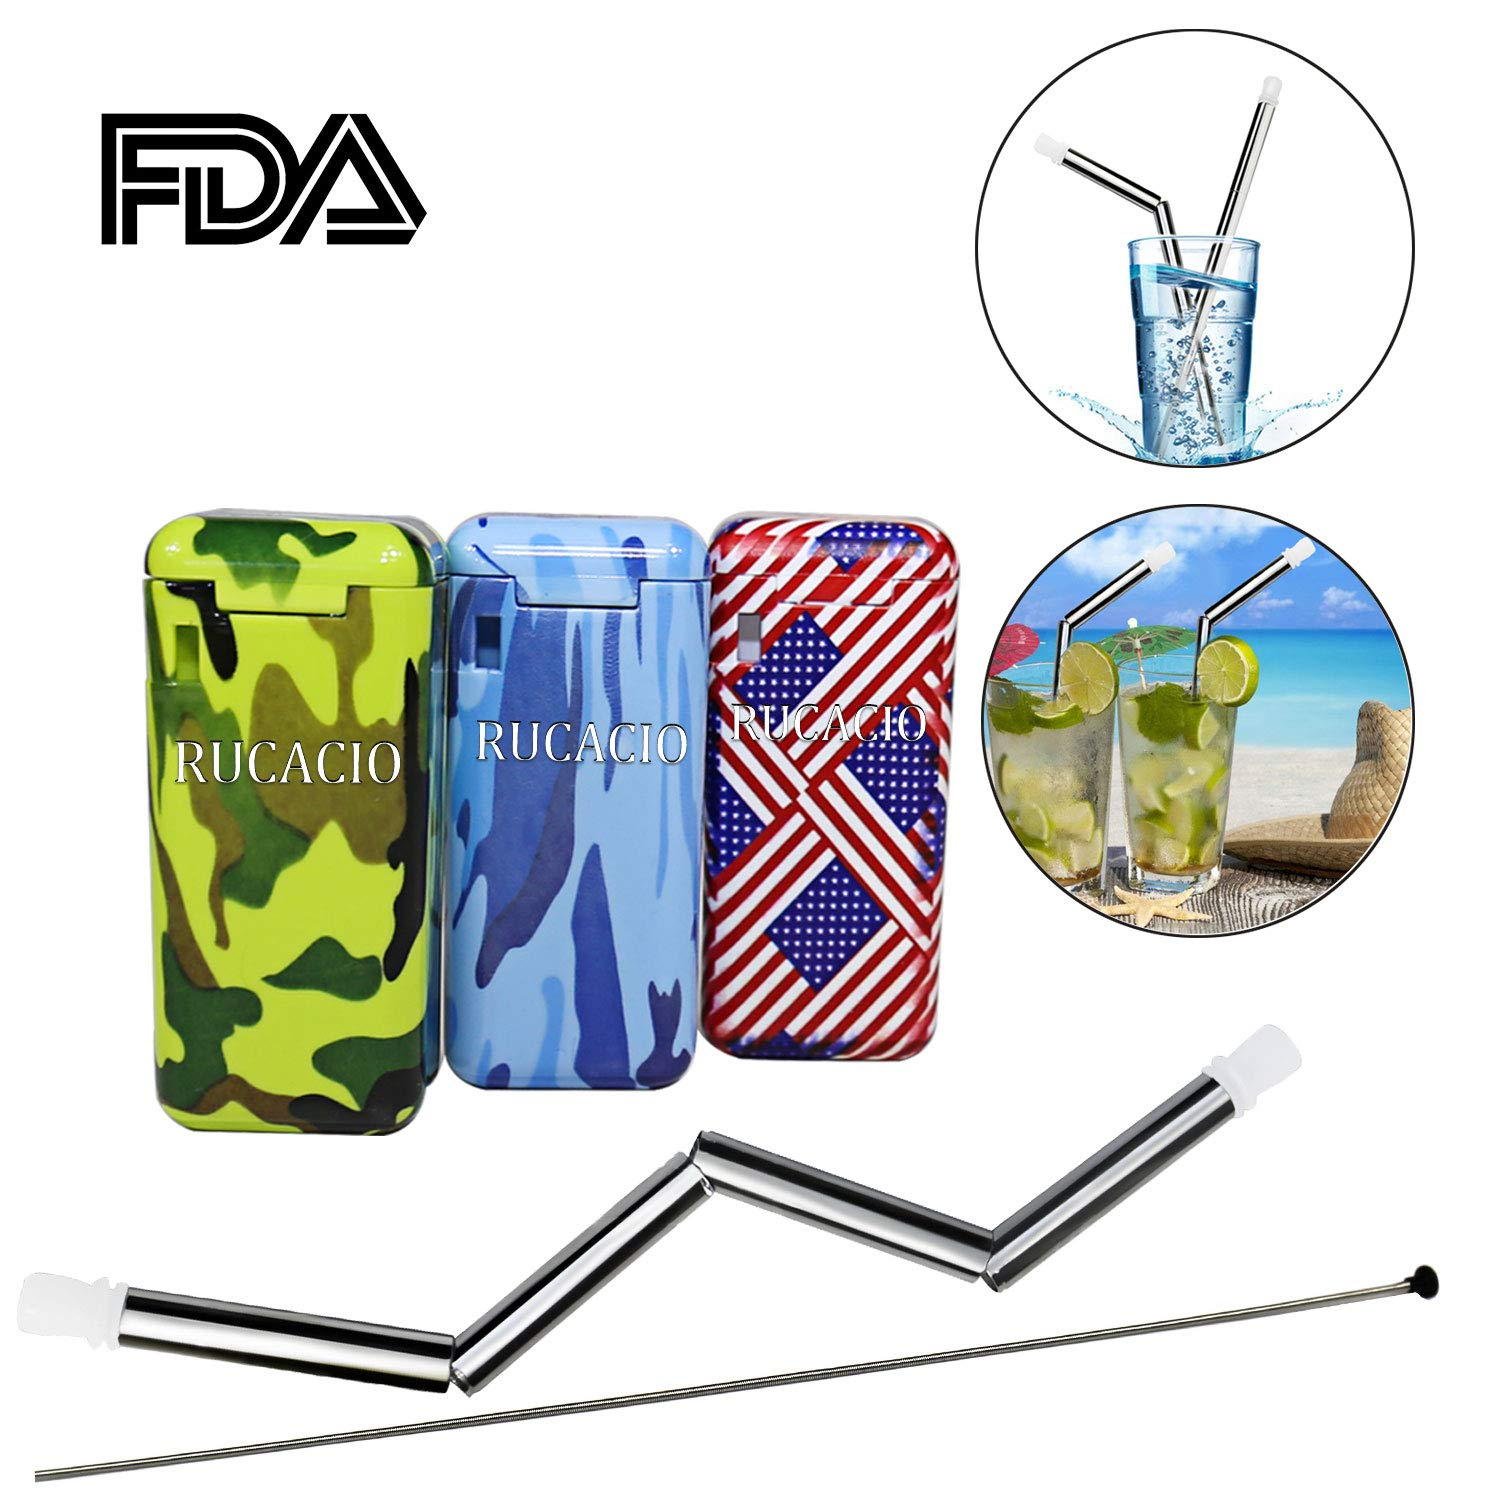 Collapsible Reusable Straw-RUCACIO Portable 304 Stainless Steel Straws Drinking Straw Reusable Case Zero Waste with Keychain (Camouflage)